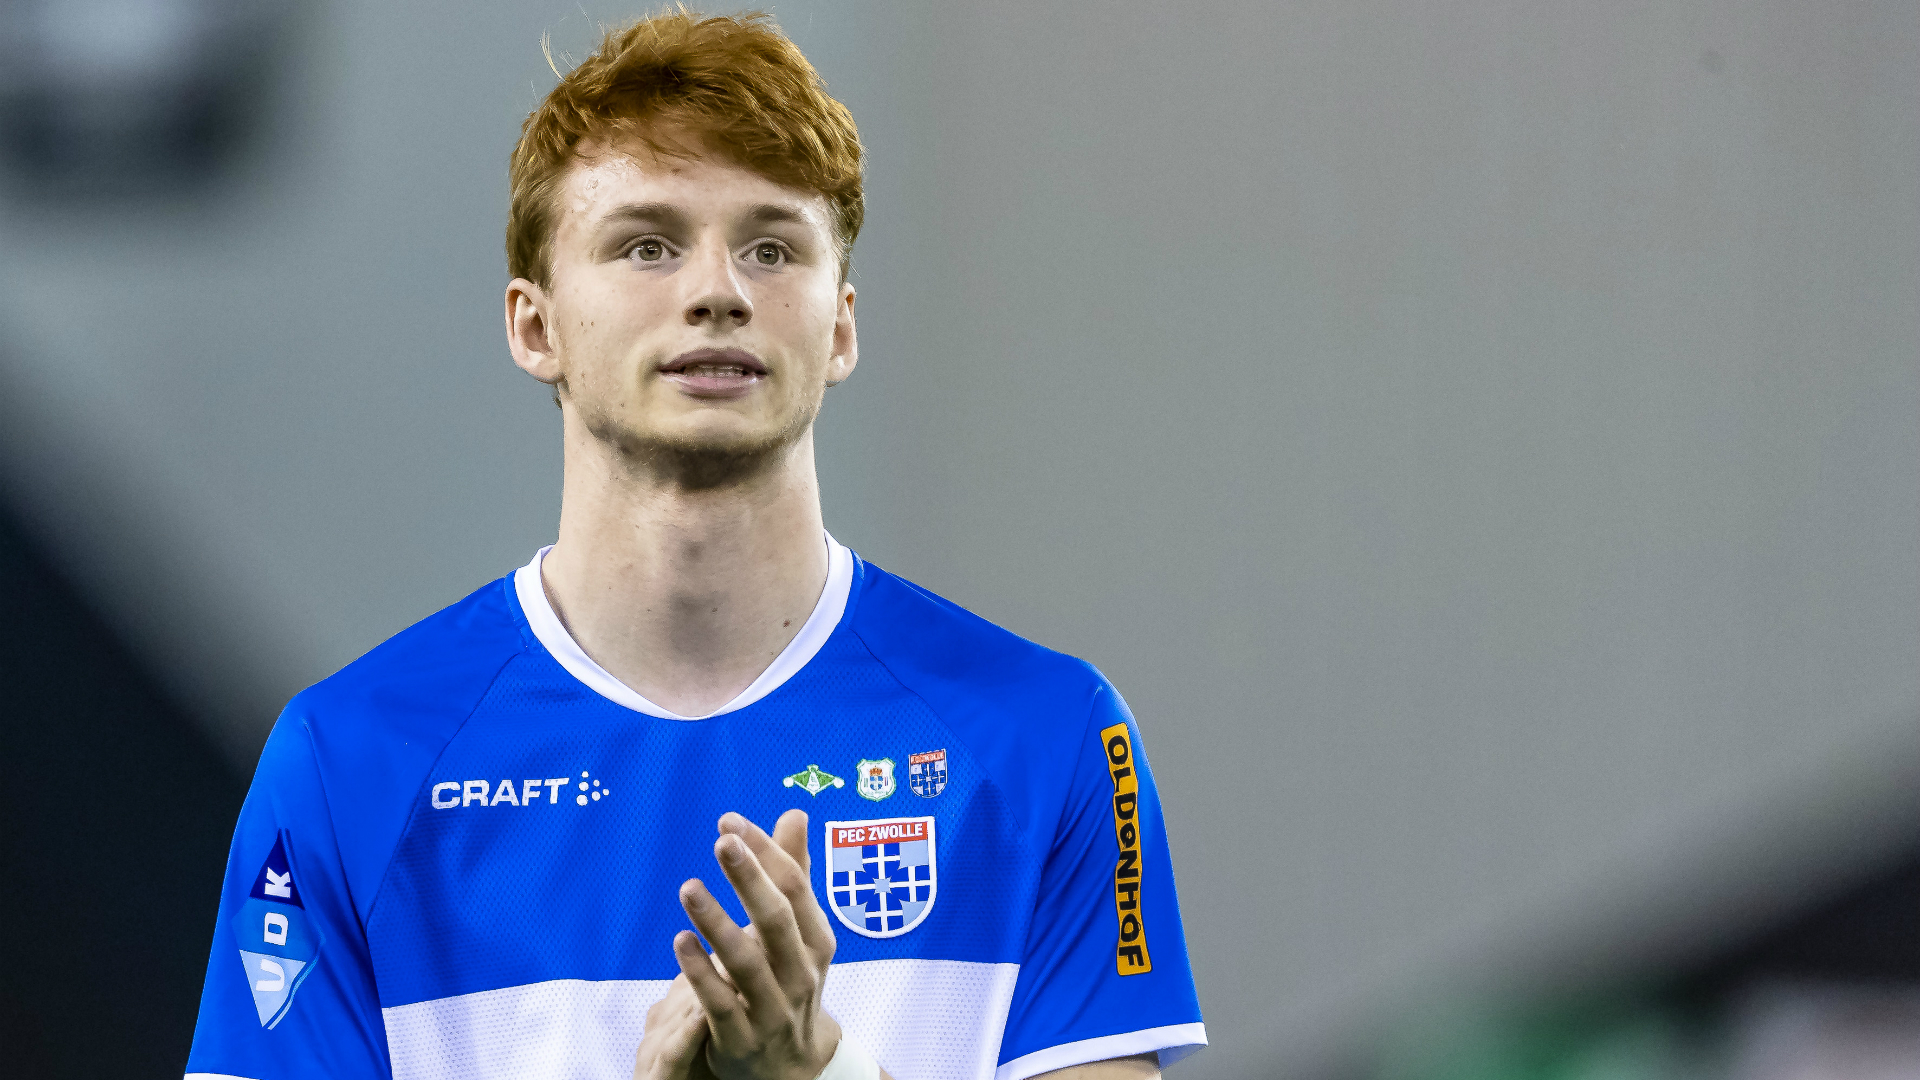 Liverpool set to sign 17-year-old defender Sepp van den Berg